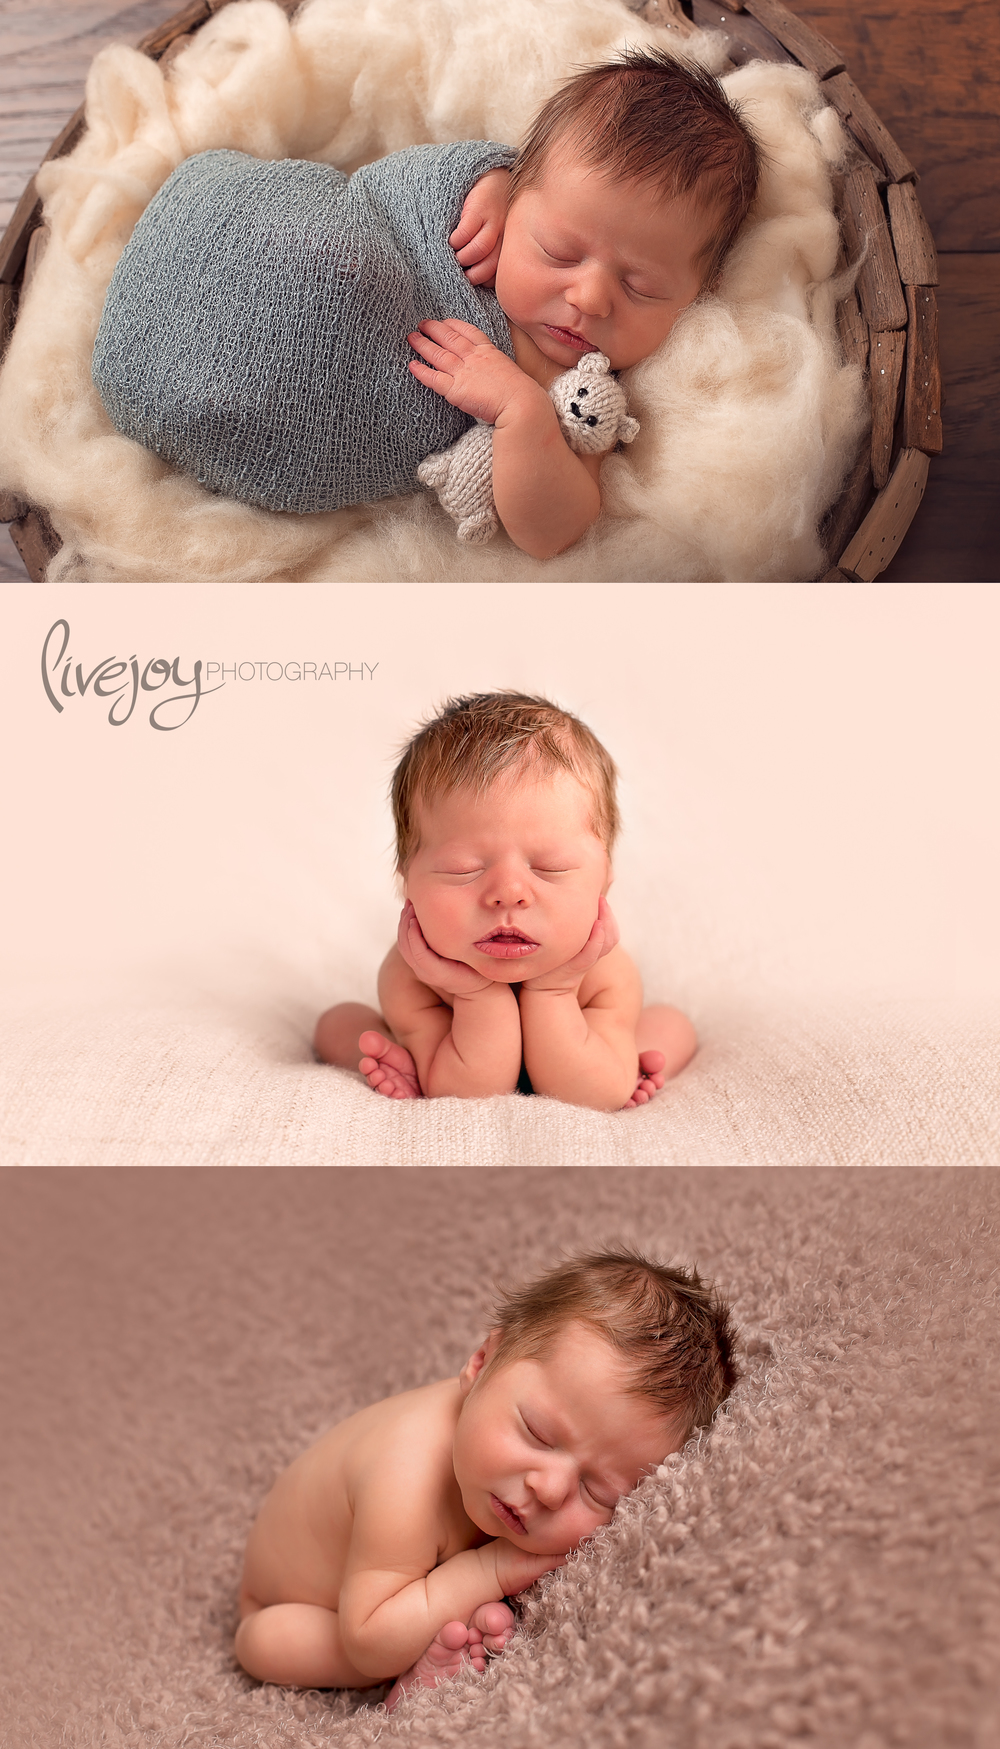 Newborn Photography | Oregon | LiveJoy Photgraphy